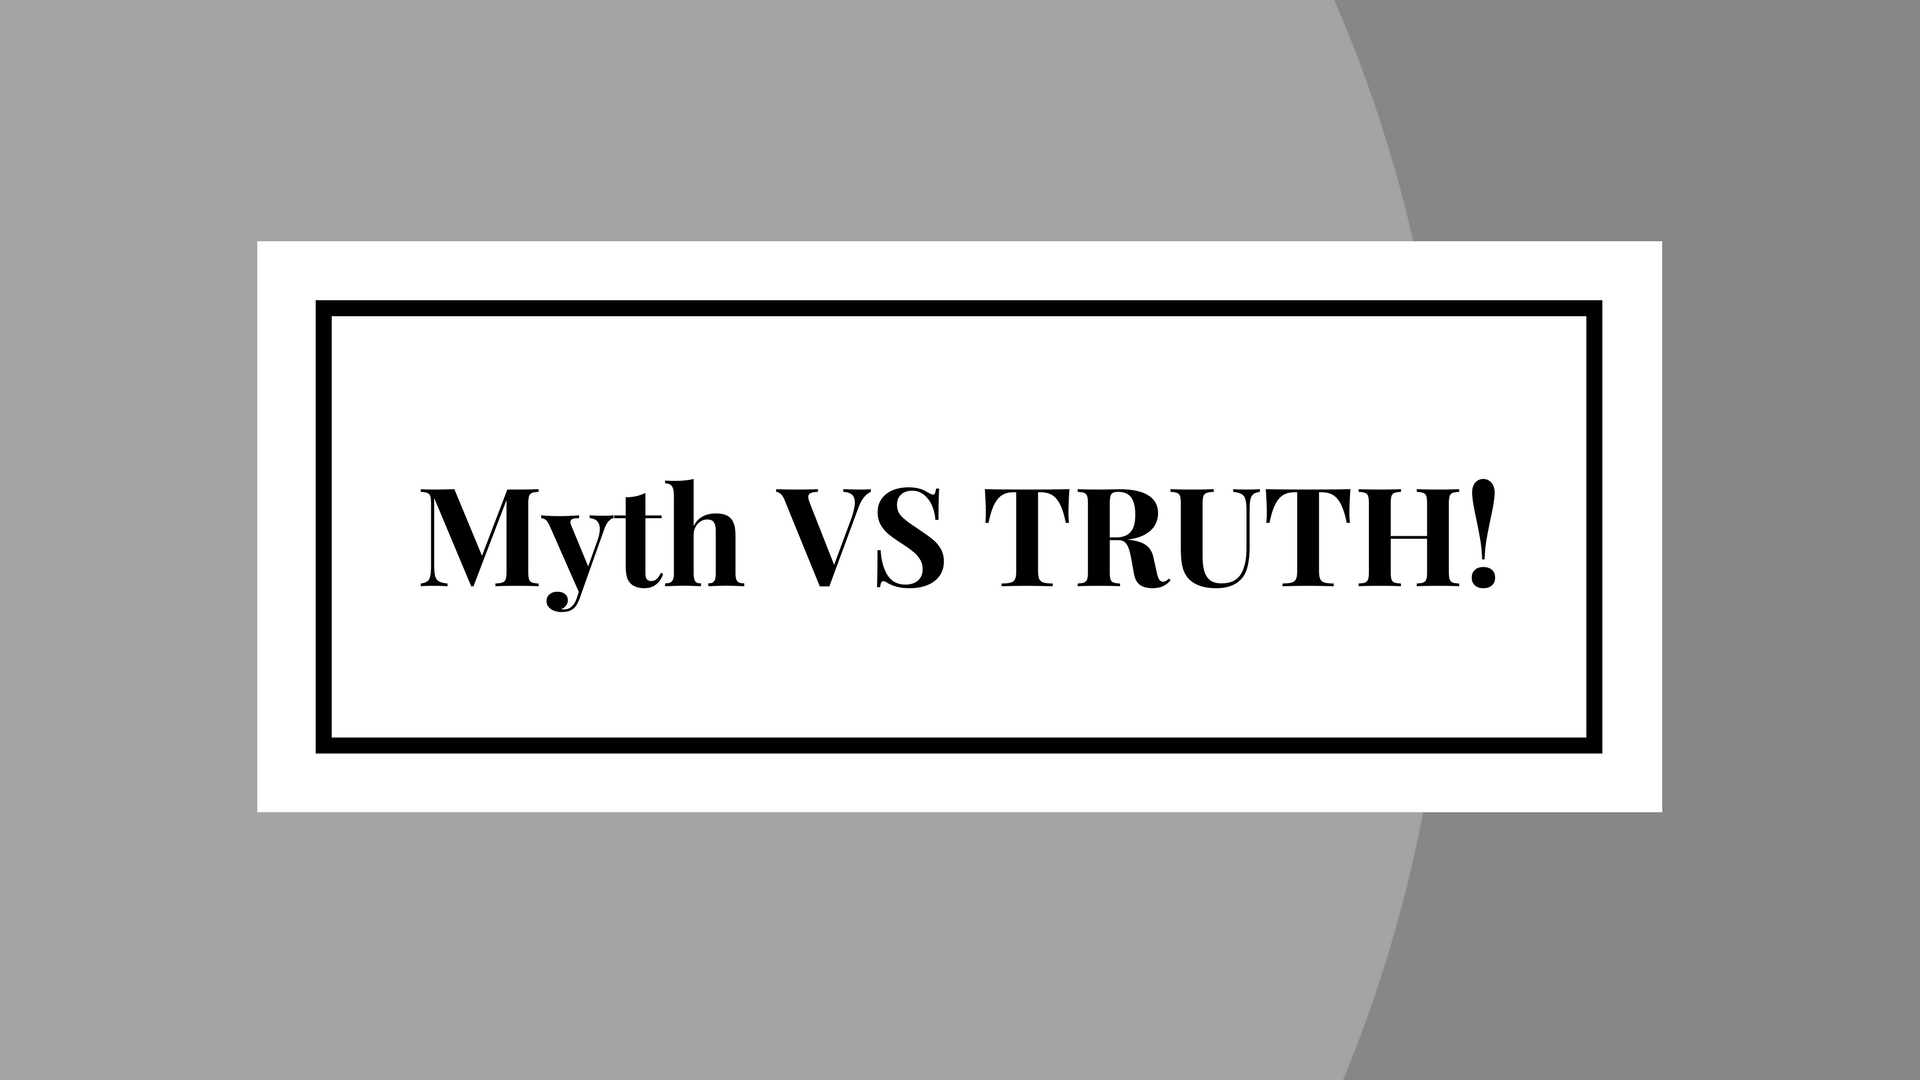 Myths VS TRUTH! Canva